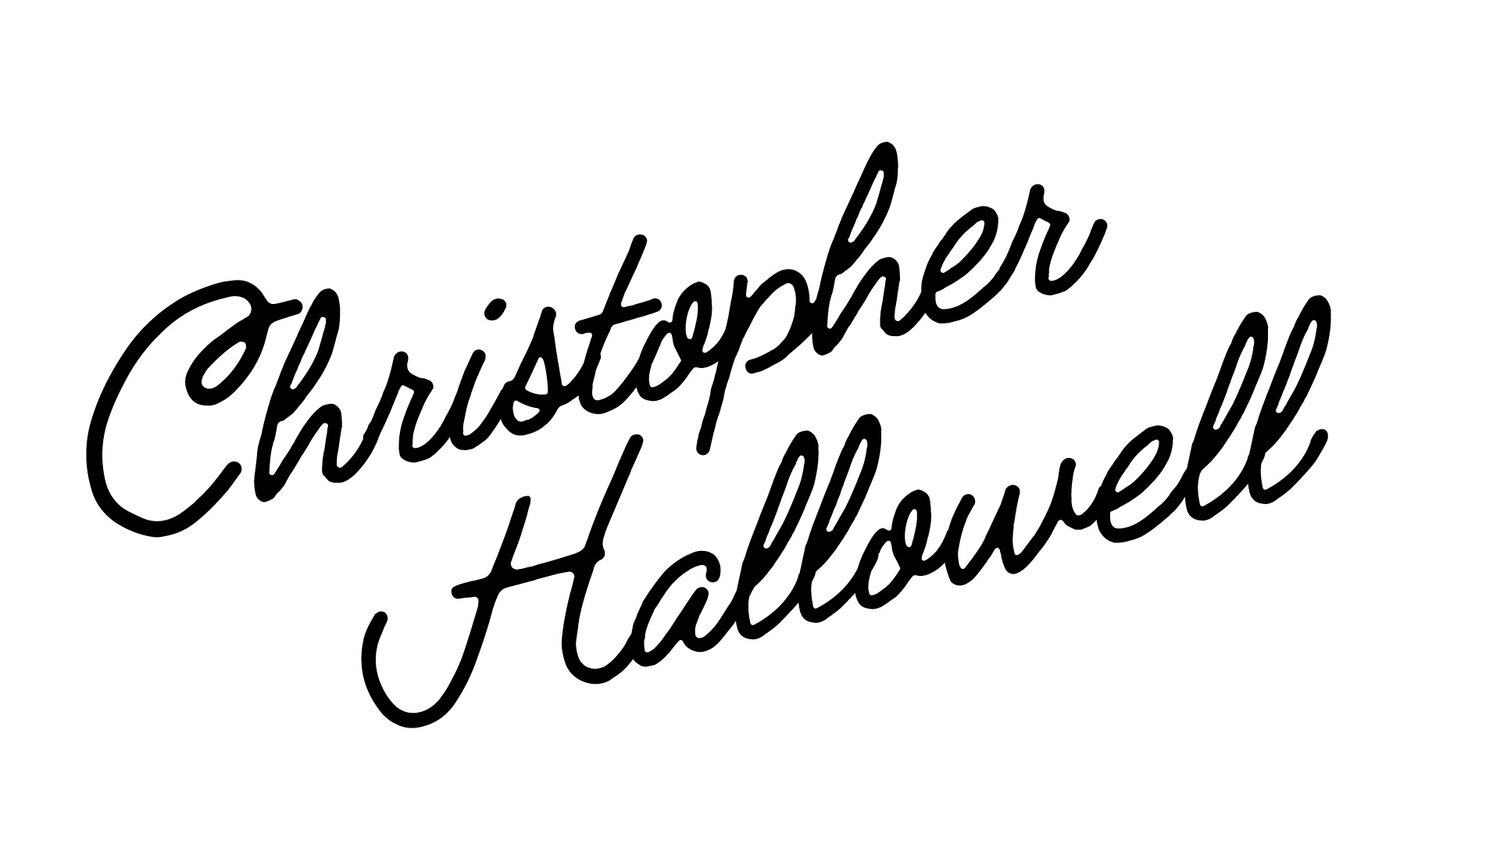 Christopher Hallowell